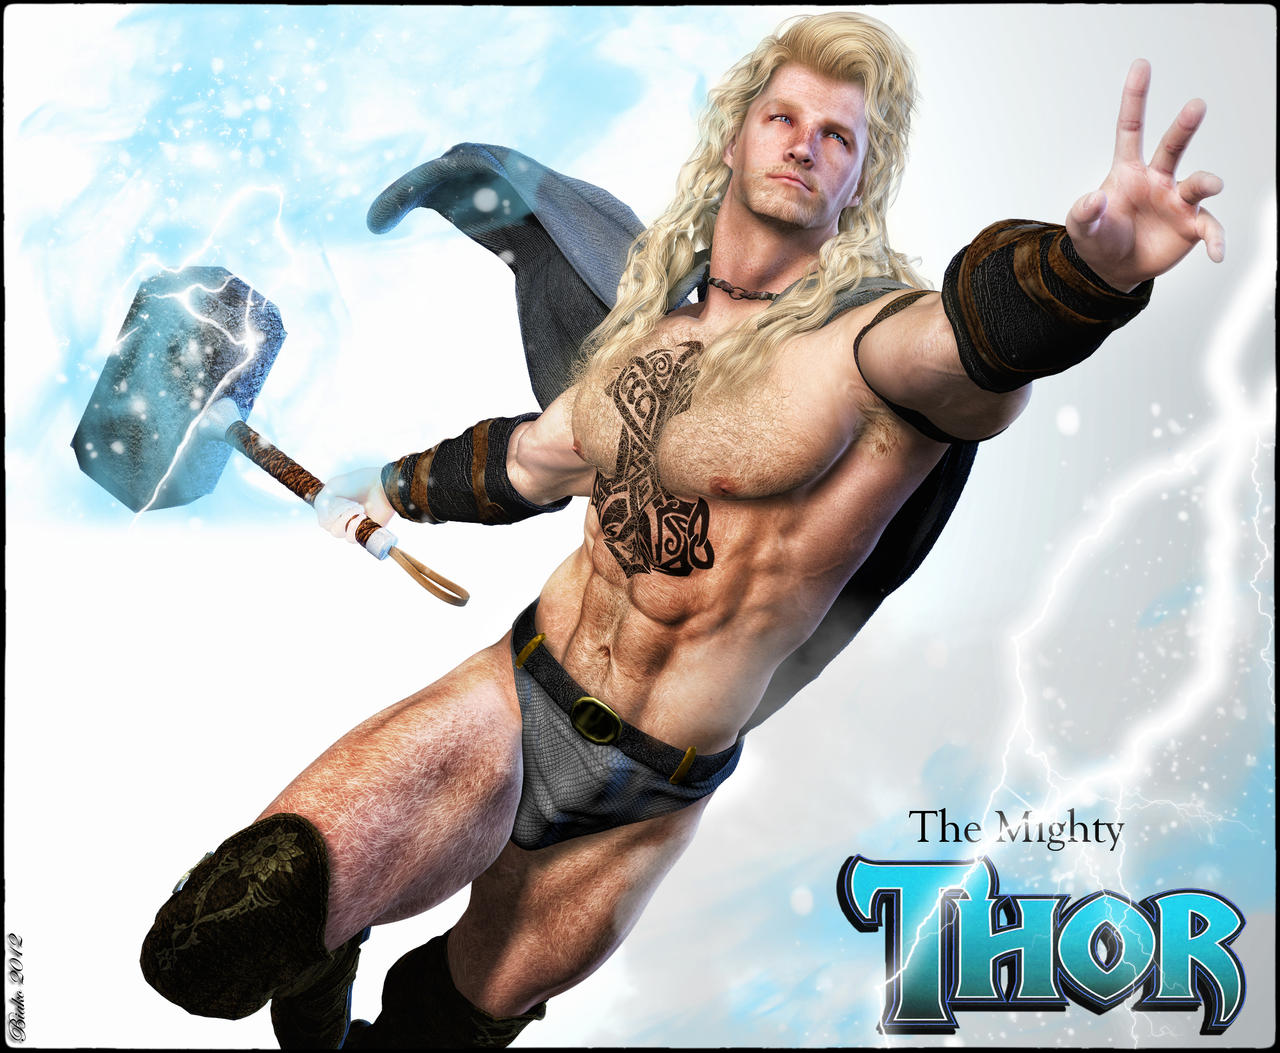 the_mighty_thor___fantasy_re_imagination_by_biako06-d57g60e.jpg